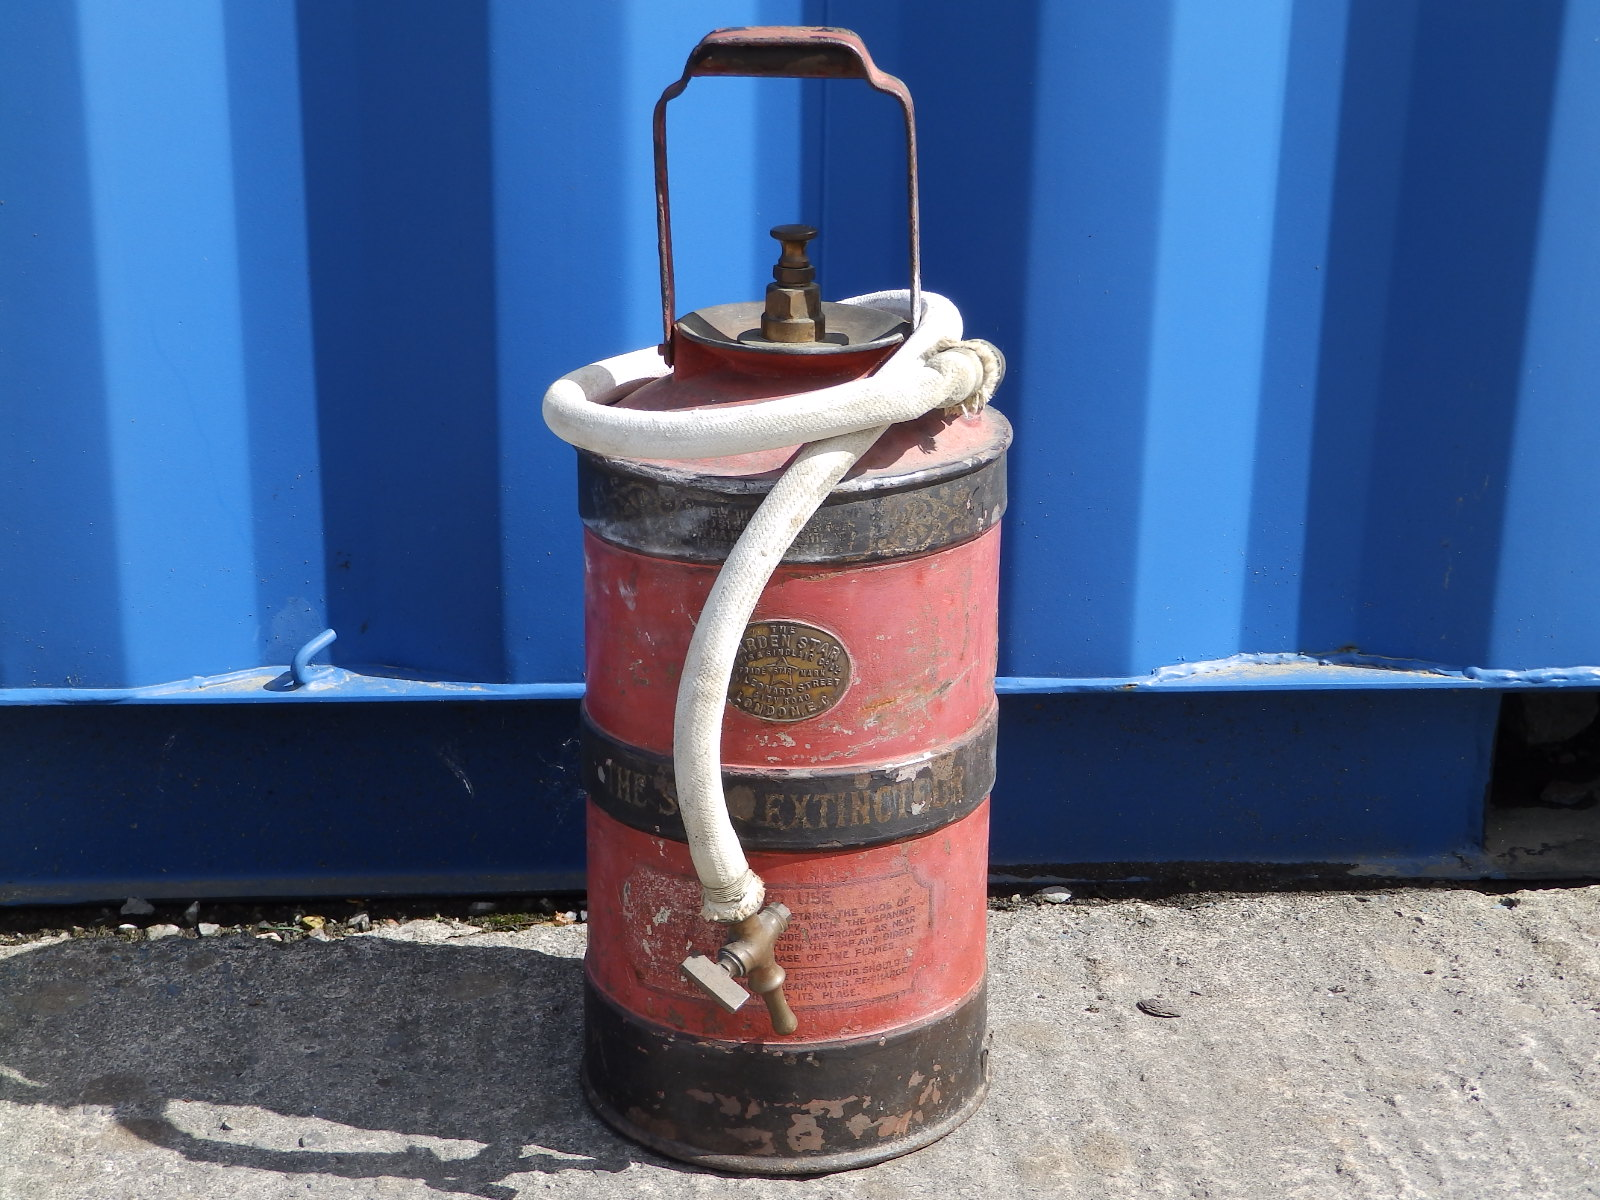 Lot 91 - A Harden 'Star' fire extinguisher by Lewis & Sinclair Co. Ltd., London.